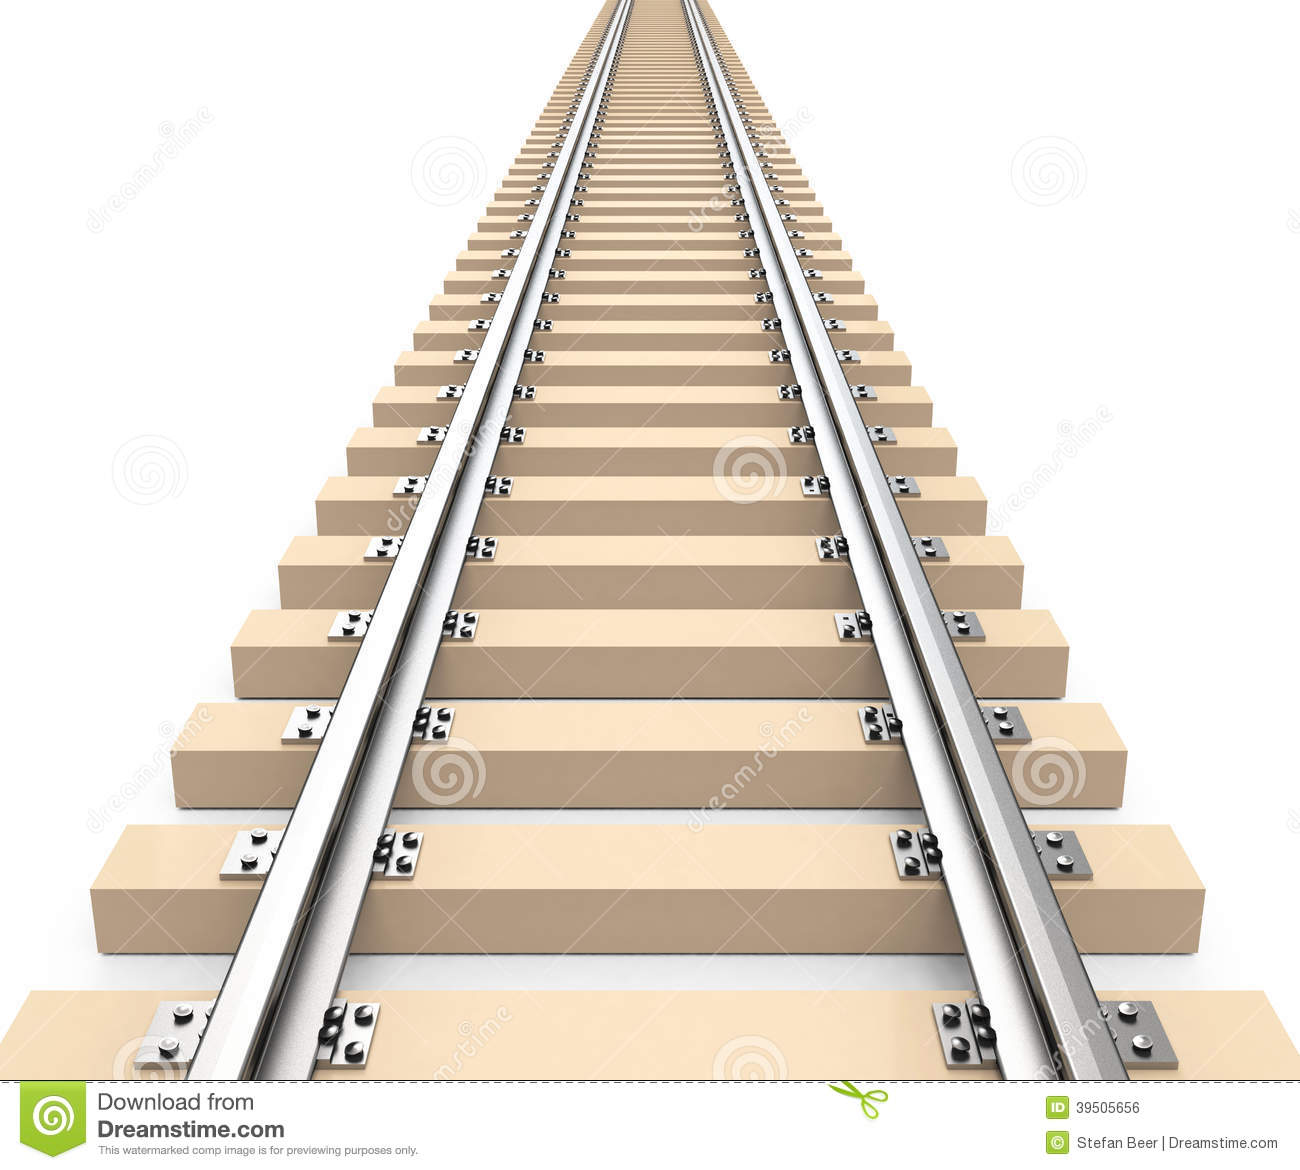 Curved Train Track Clipart The train track royalty free